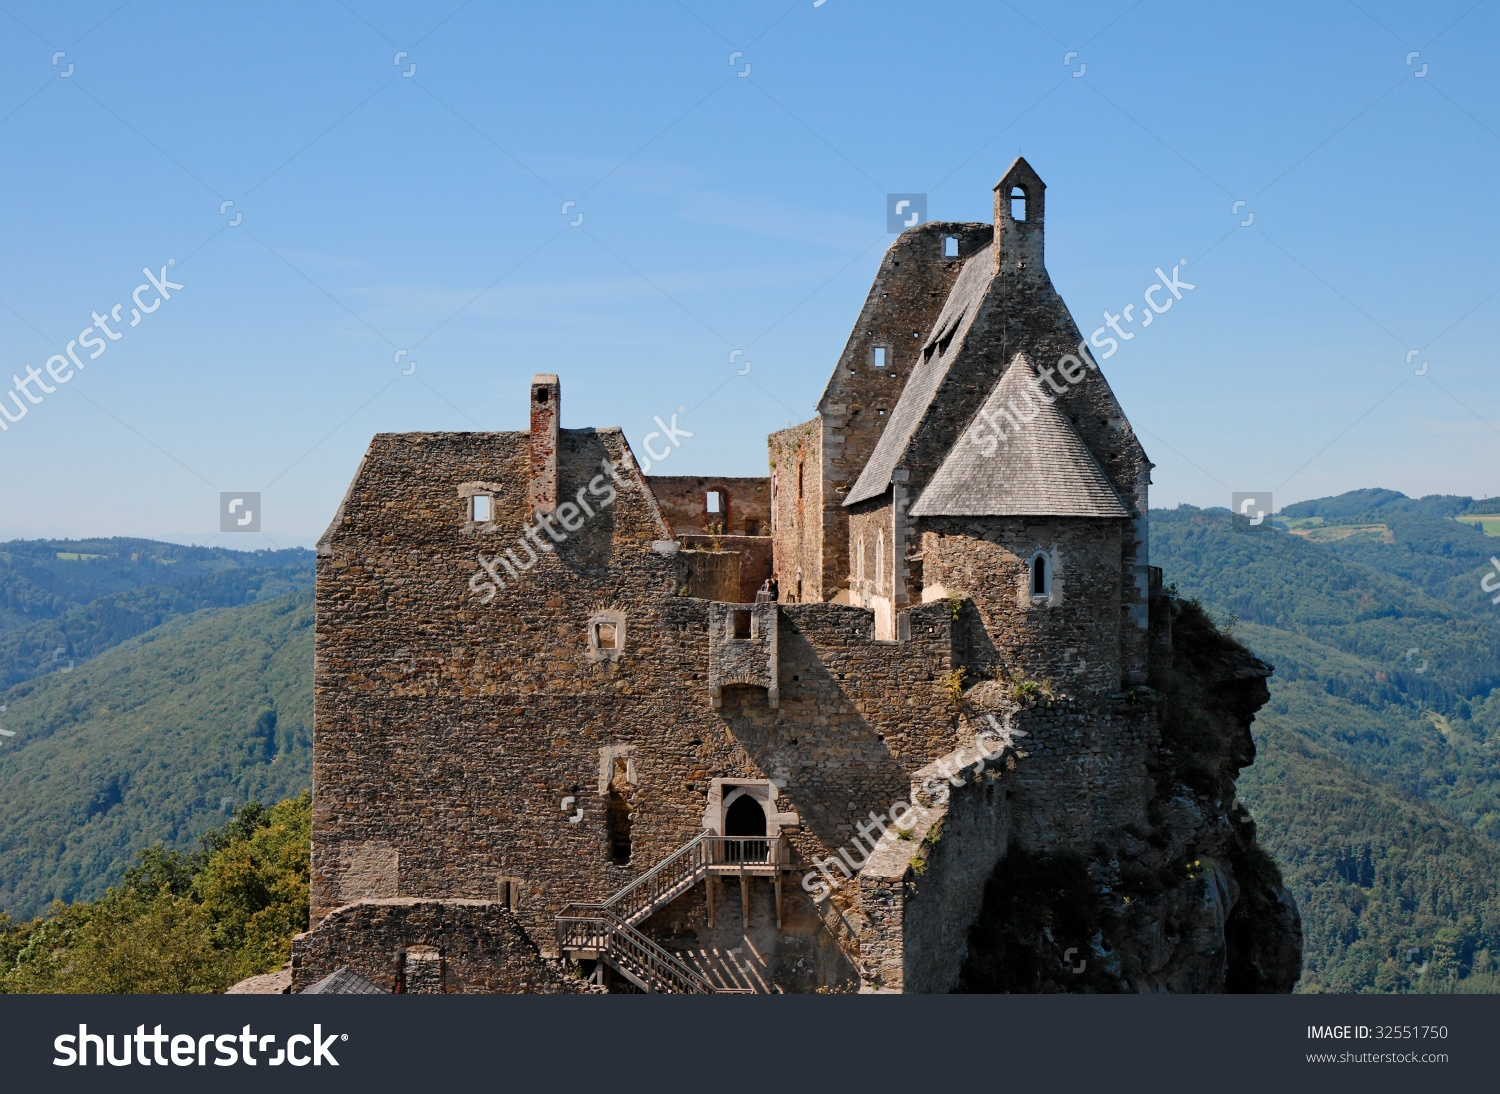 Towers Roofs Medieval Aggstein Castle Donau Stock Photo 32551750.